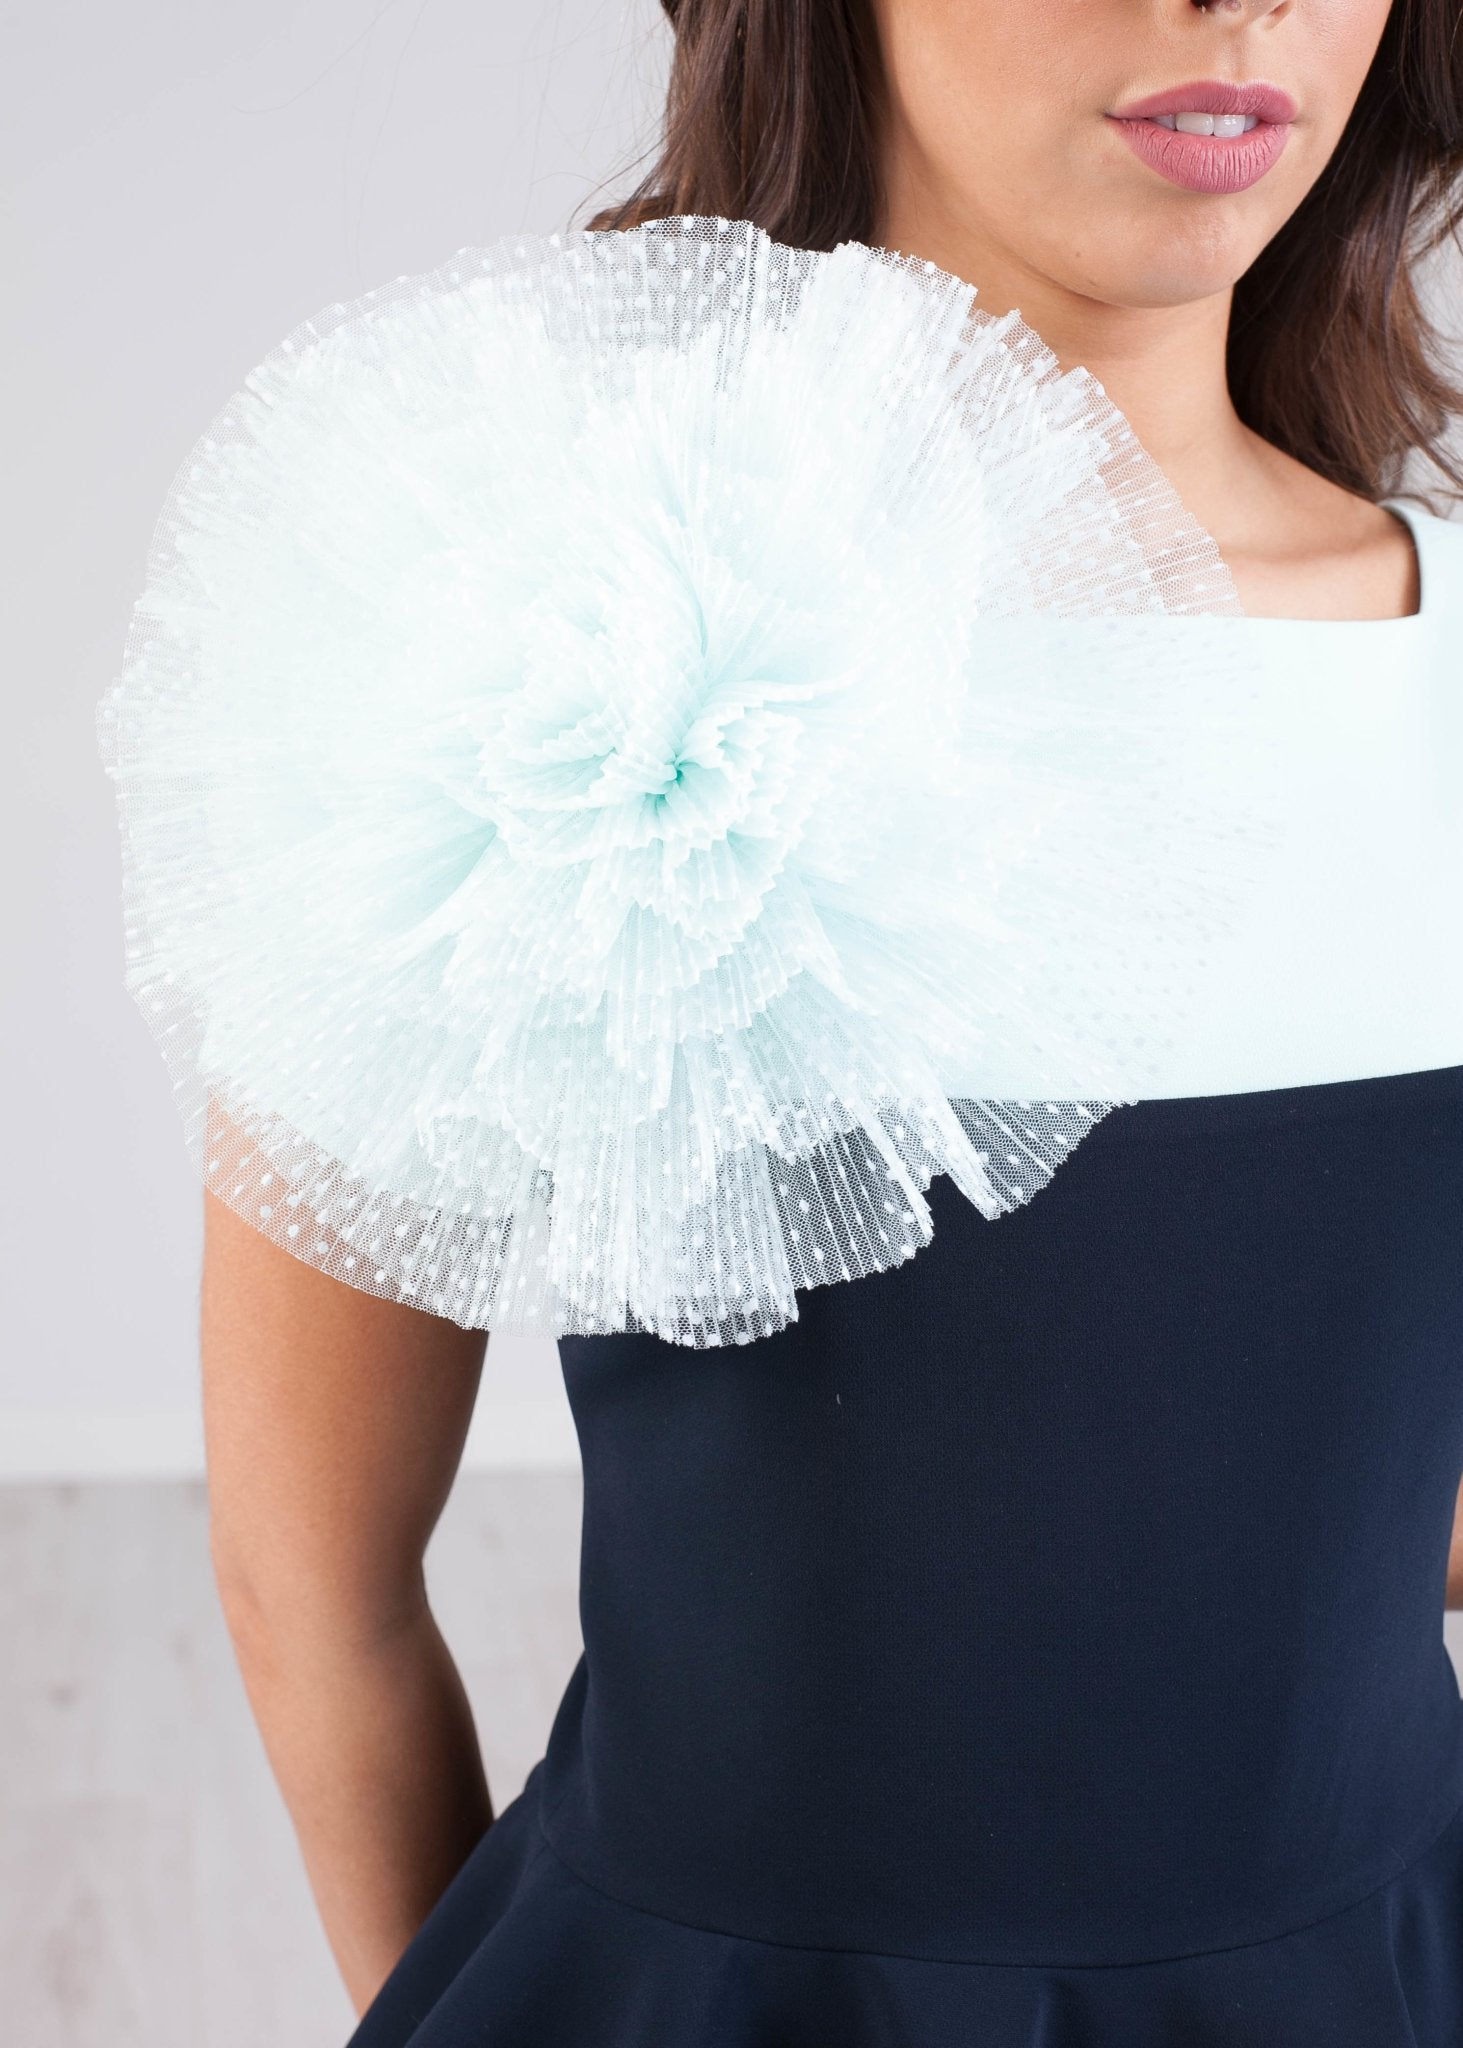 Marissa Mint & Navy Two Piece - The Walk in Wardrobe